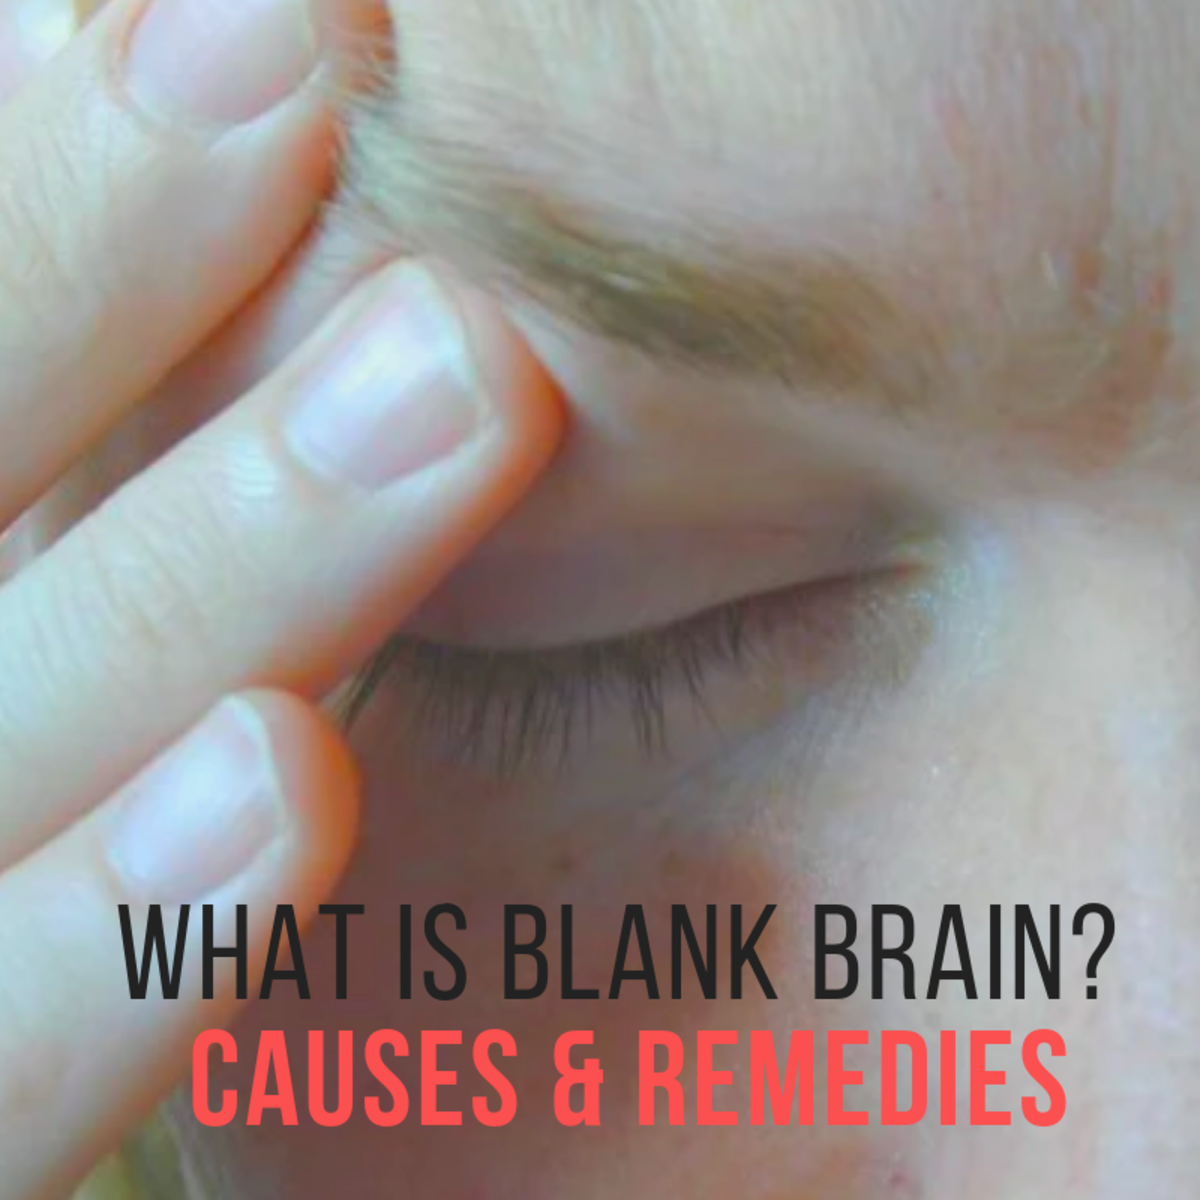 ca53060ef What Is Mind Blanking? Tips to Get Rid of That Foggy Feeling | Owlcation